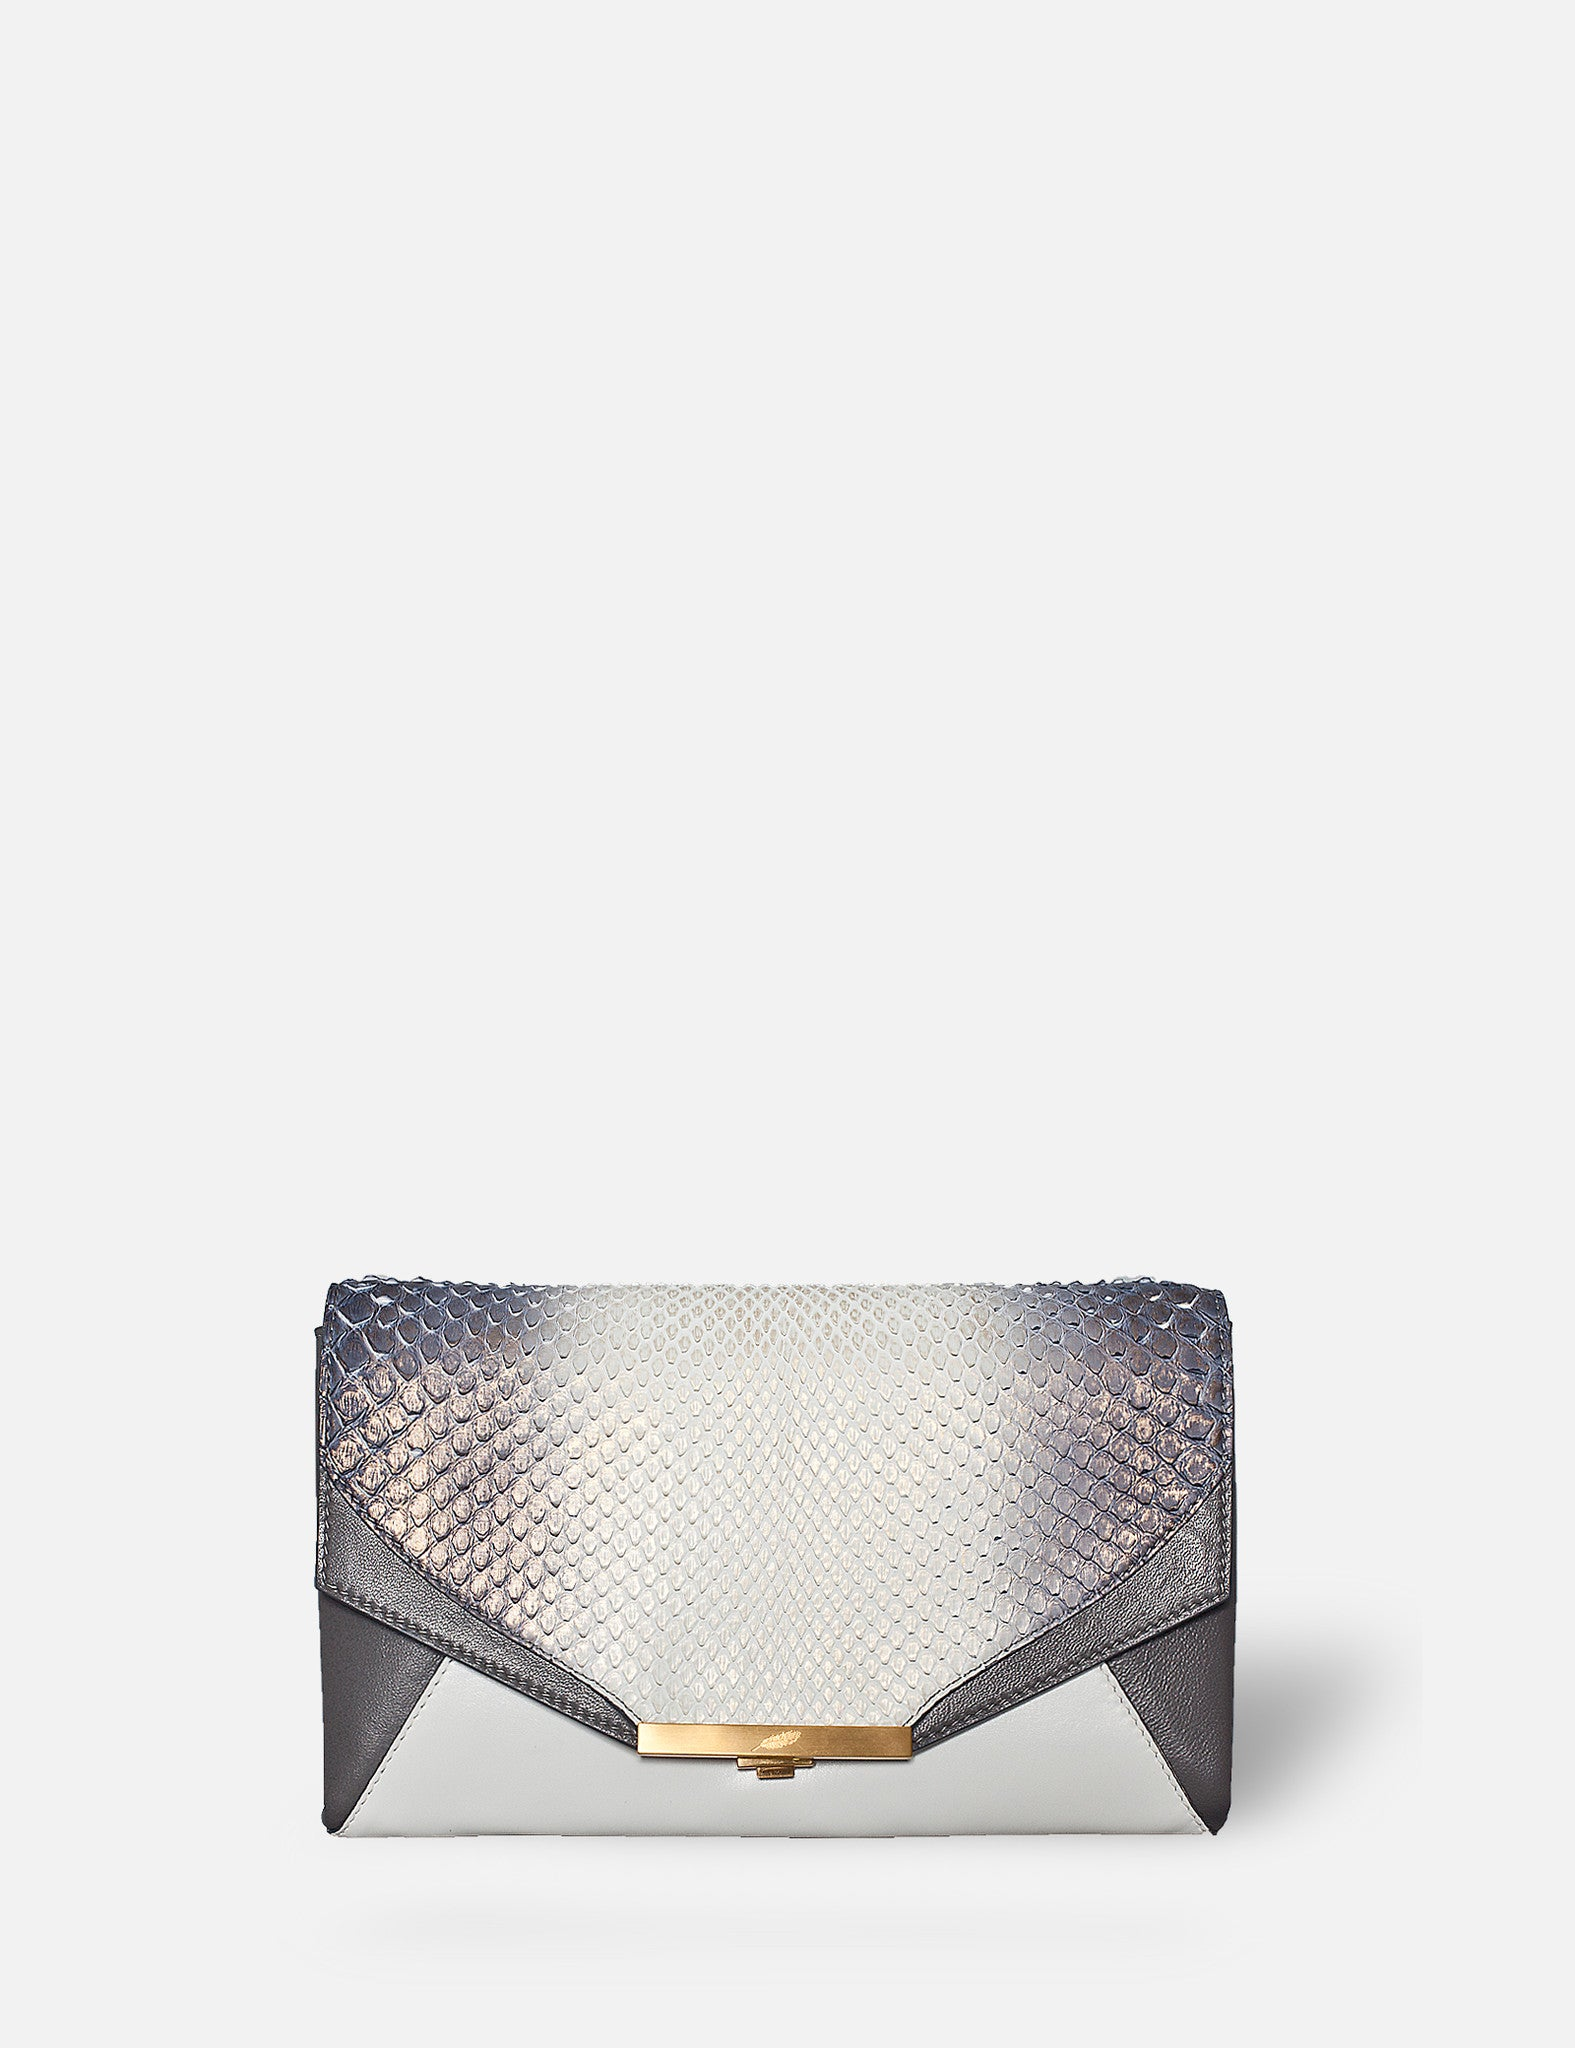 Khirma New York Unique Luxury Designer Exotic Watersnake Python Skin Envelope Clutch Purse. Removable chain for the perfect evening clutch. One inner pocket and six card slots. White with brushed gold ombre